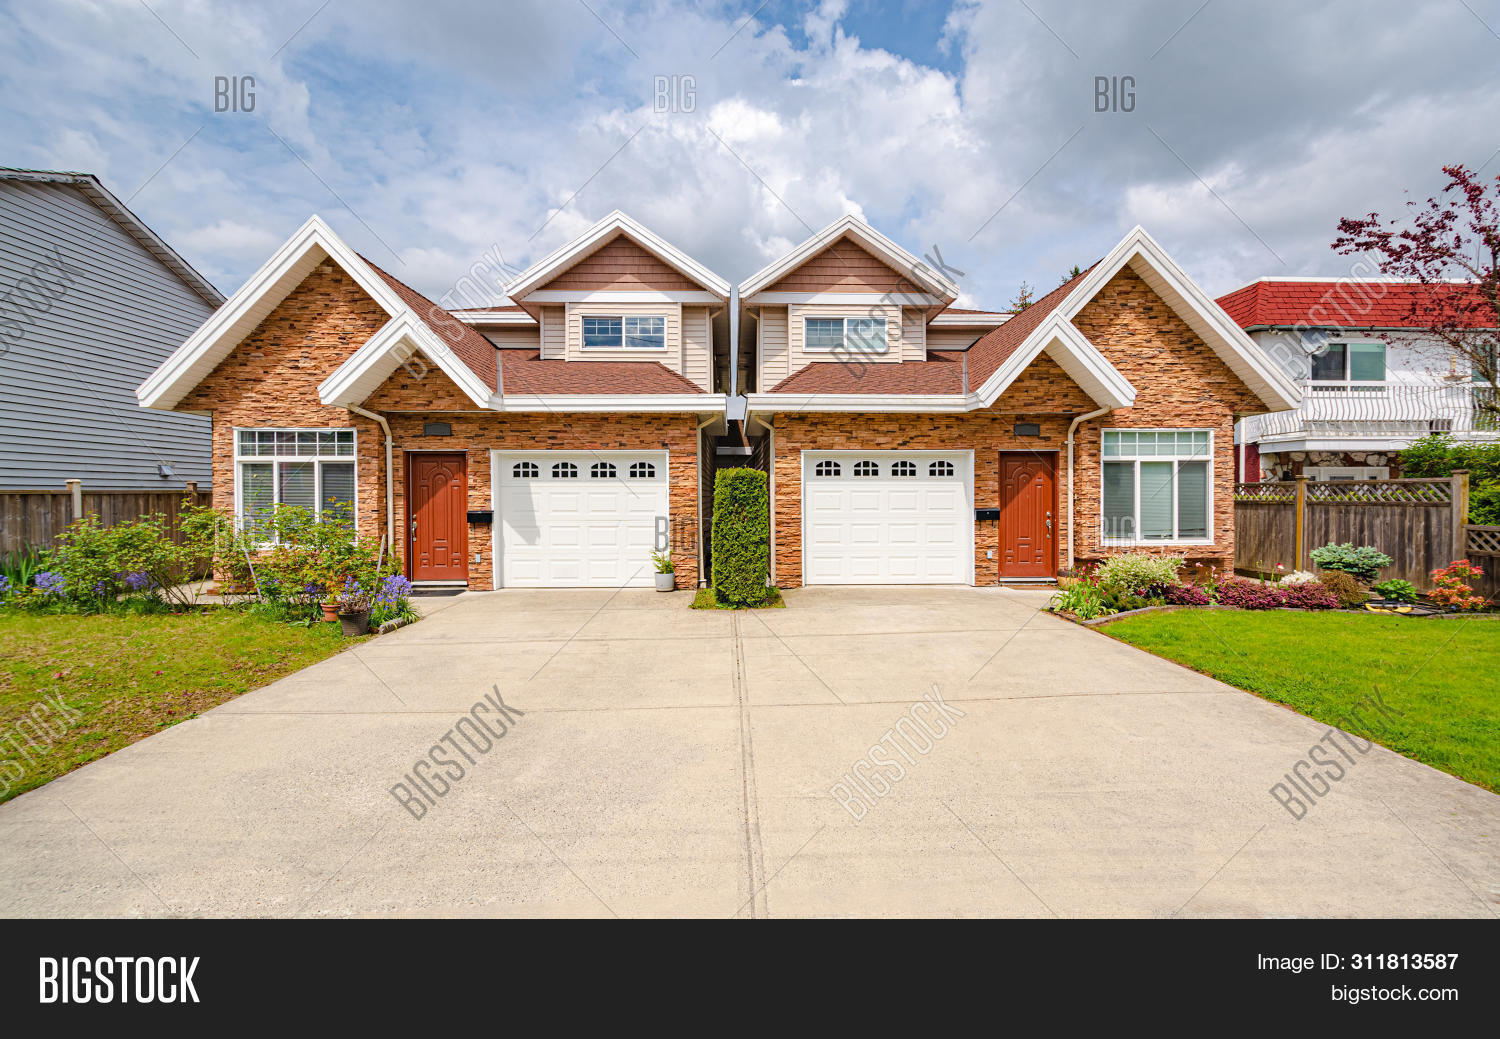 american,attached,average,blue,british,canadian,community,concrete,district,door,driveway,dwelling,entrance,entry,estate,exterior,facade,family,footprint,garage,home,house,housing,land,lawn,living,lot,modern,mortgage,neighborhood,outdoor,own,ownership,payment,porch,private,property,realtor,realty,residence,residential,single,sky,small,suburb,suburban,traditional,urban,usa,vancouver